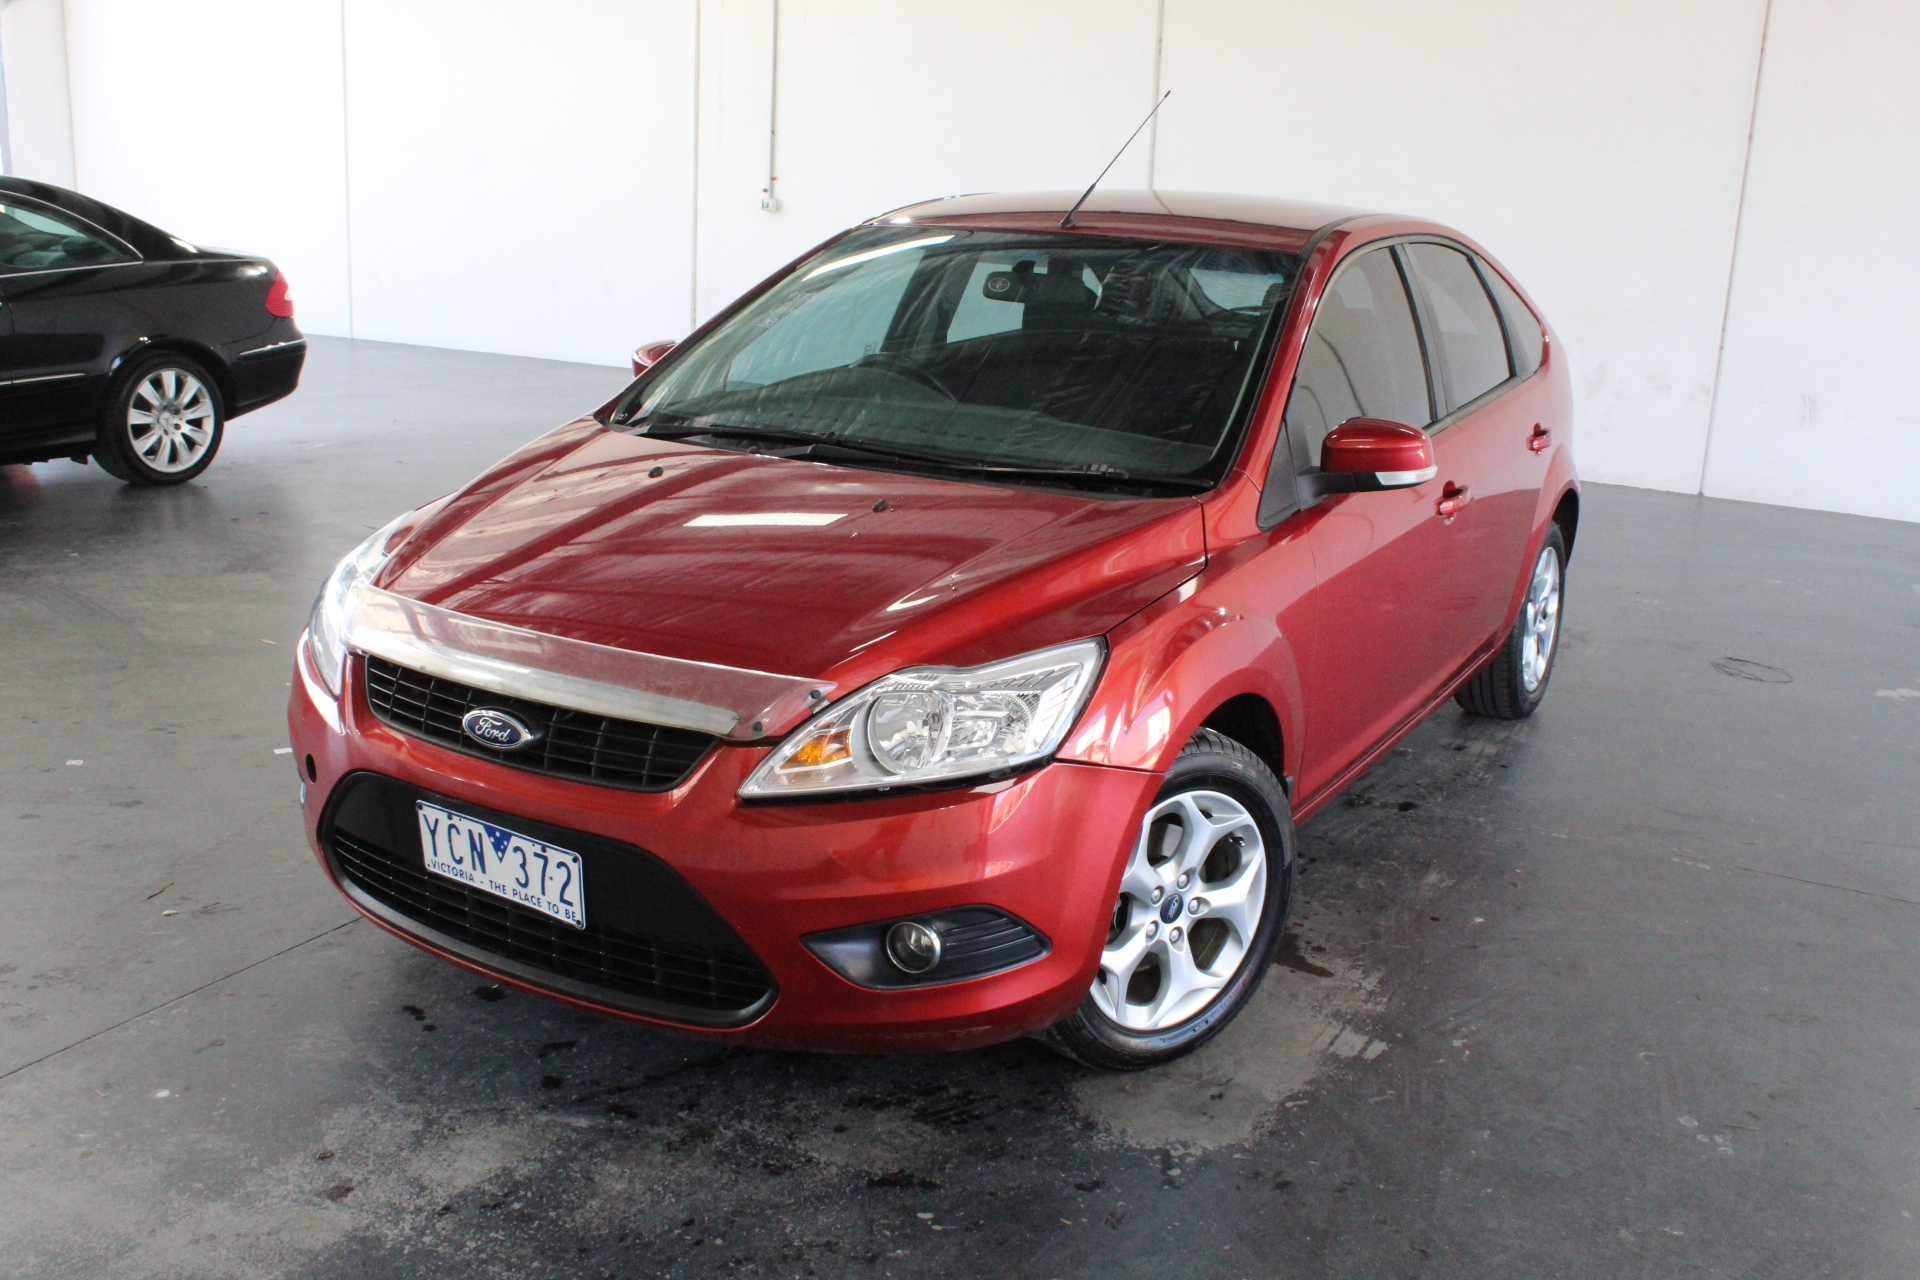 2010 Ford Focus LX LV Automatic Hatchback (WOVR)